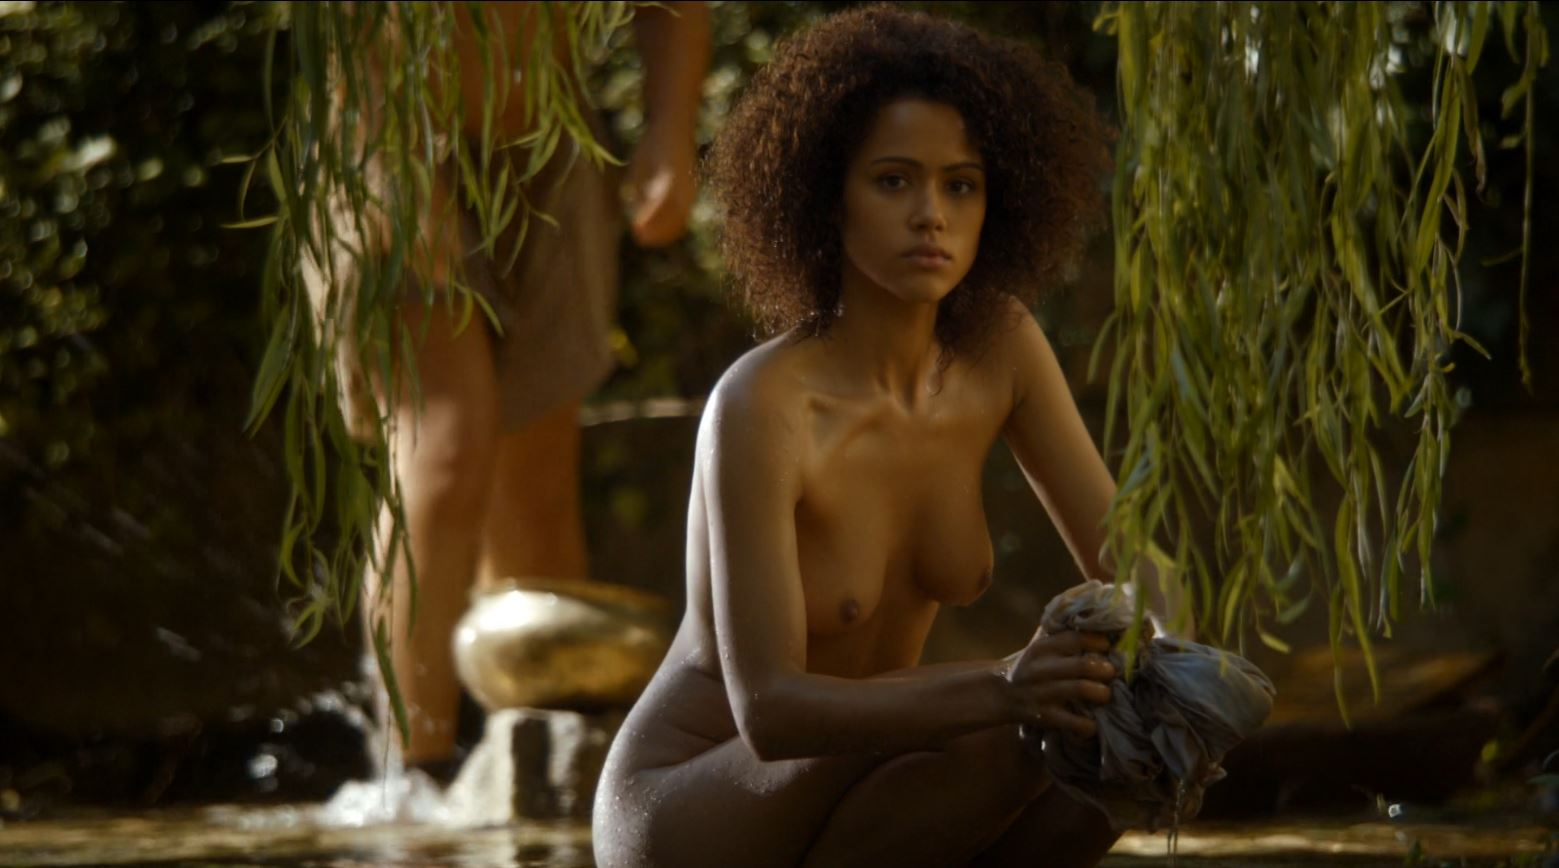 Nathalie emmanuel nude game of thrones